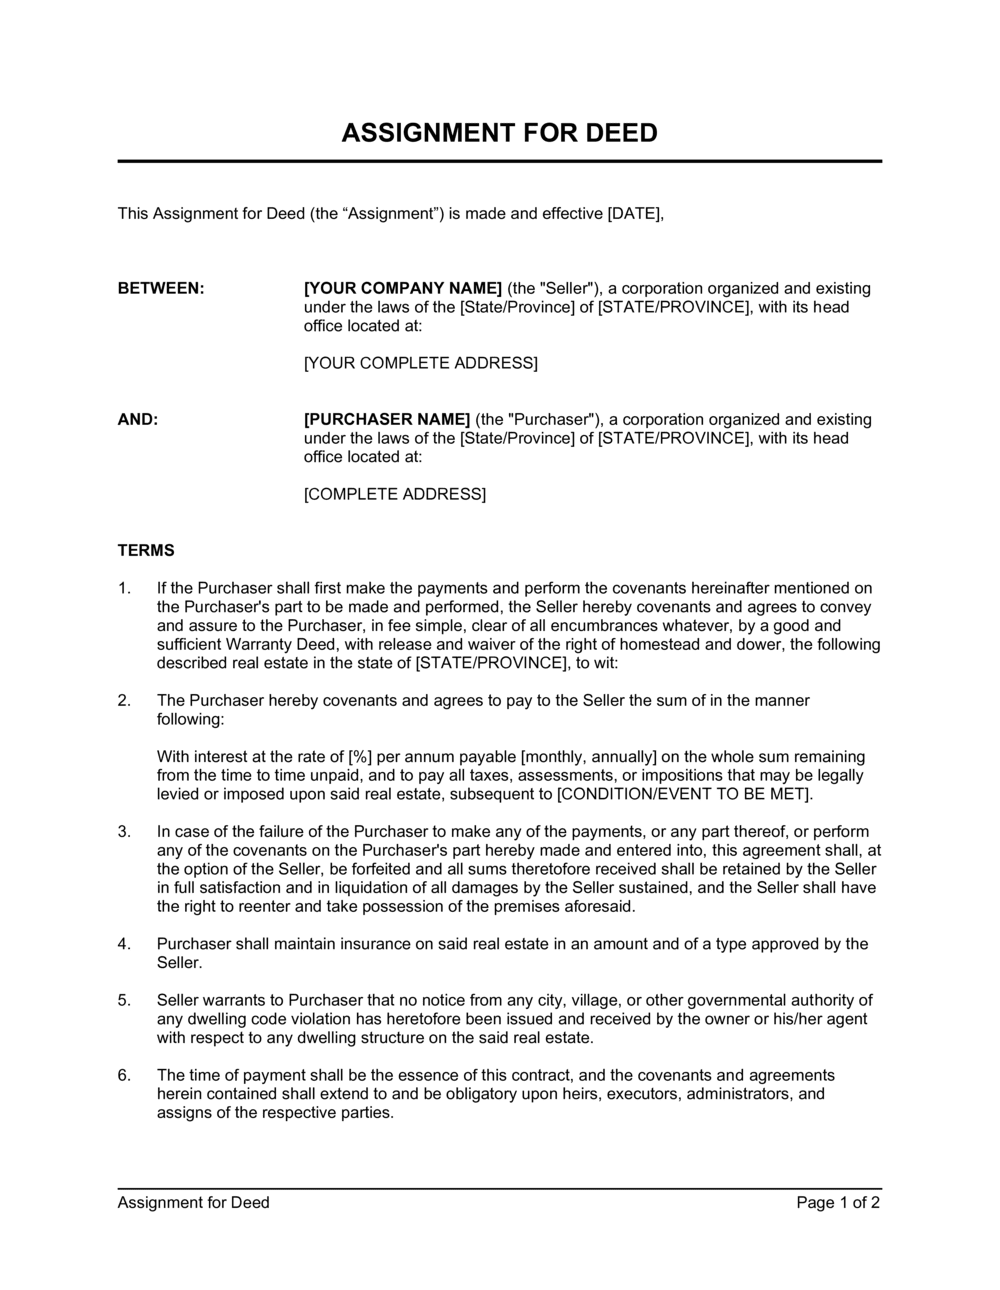 Business-in-a-Box's Assignment for Deed Template